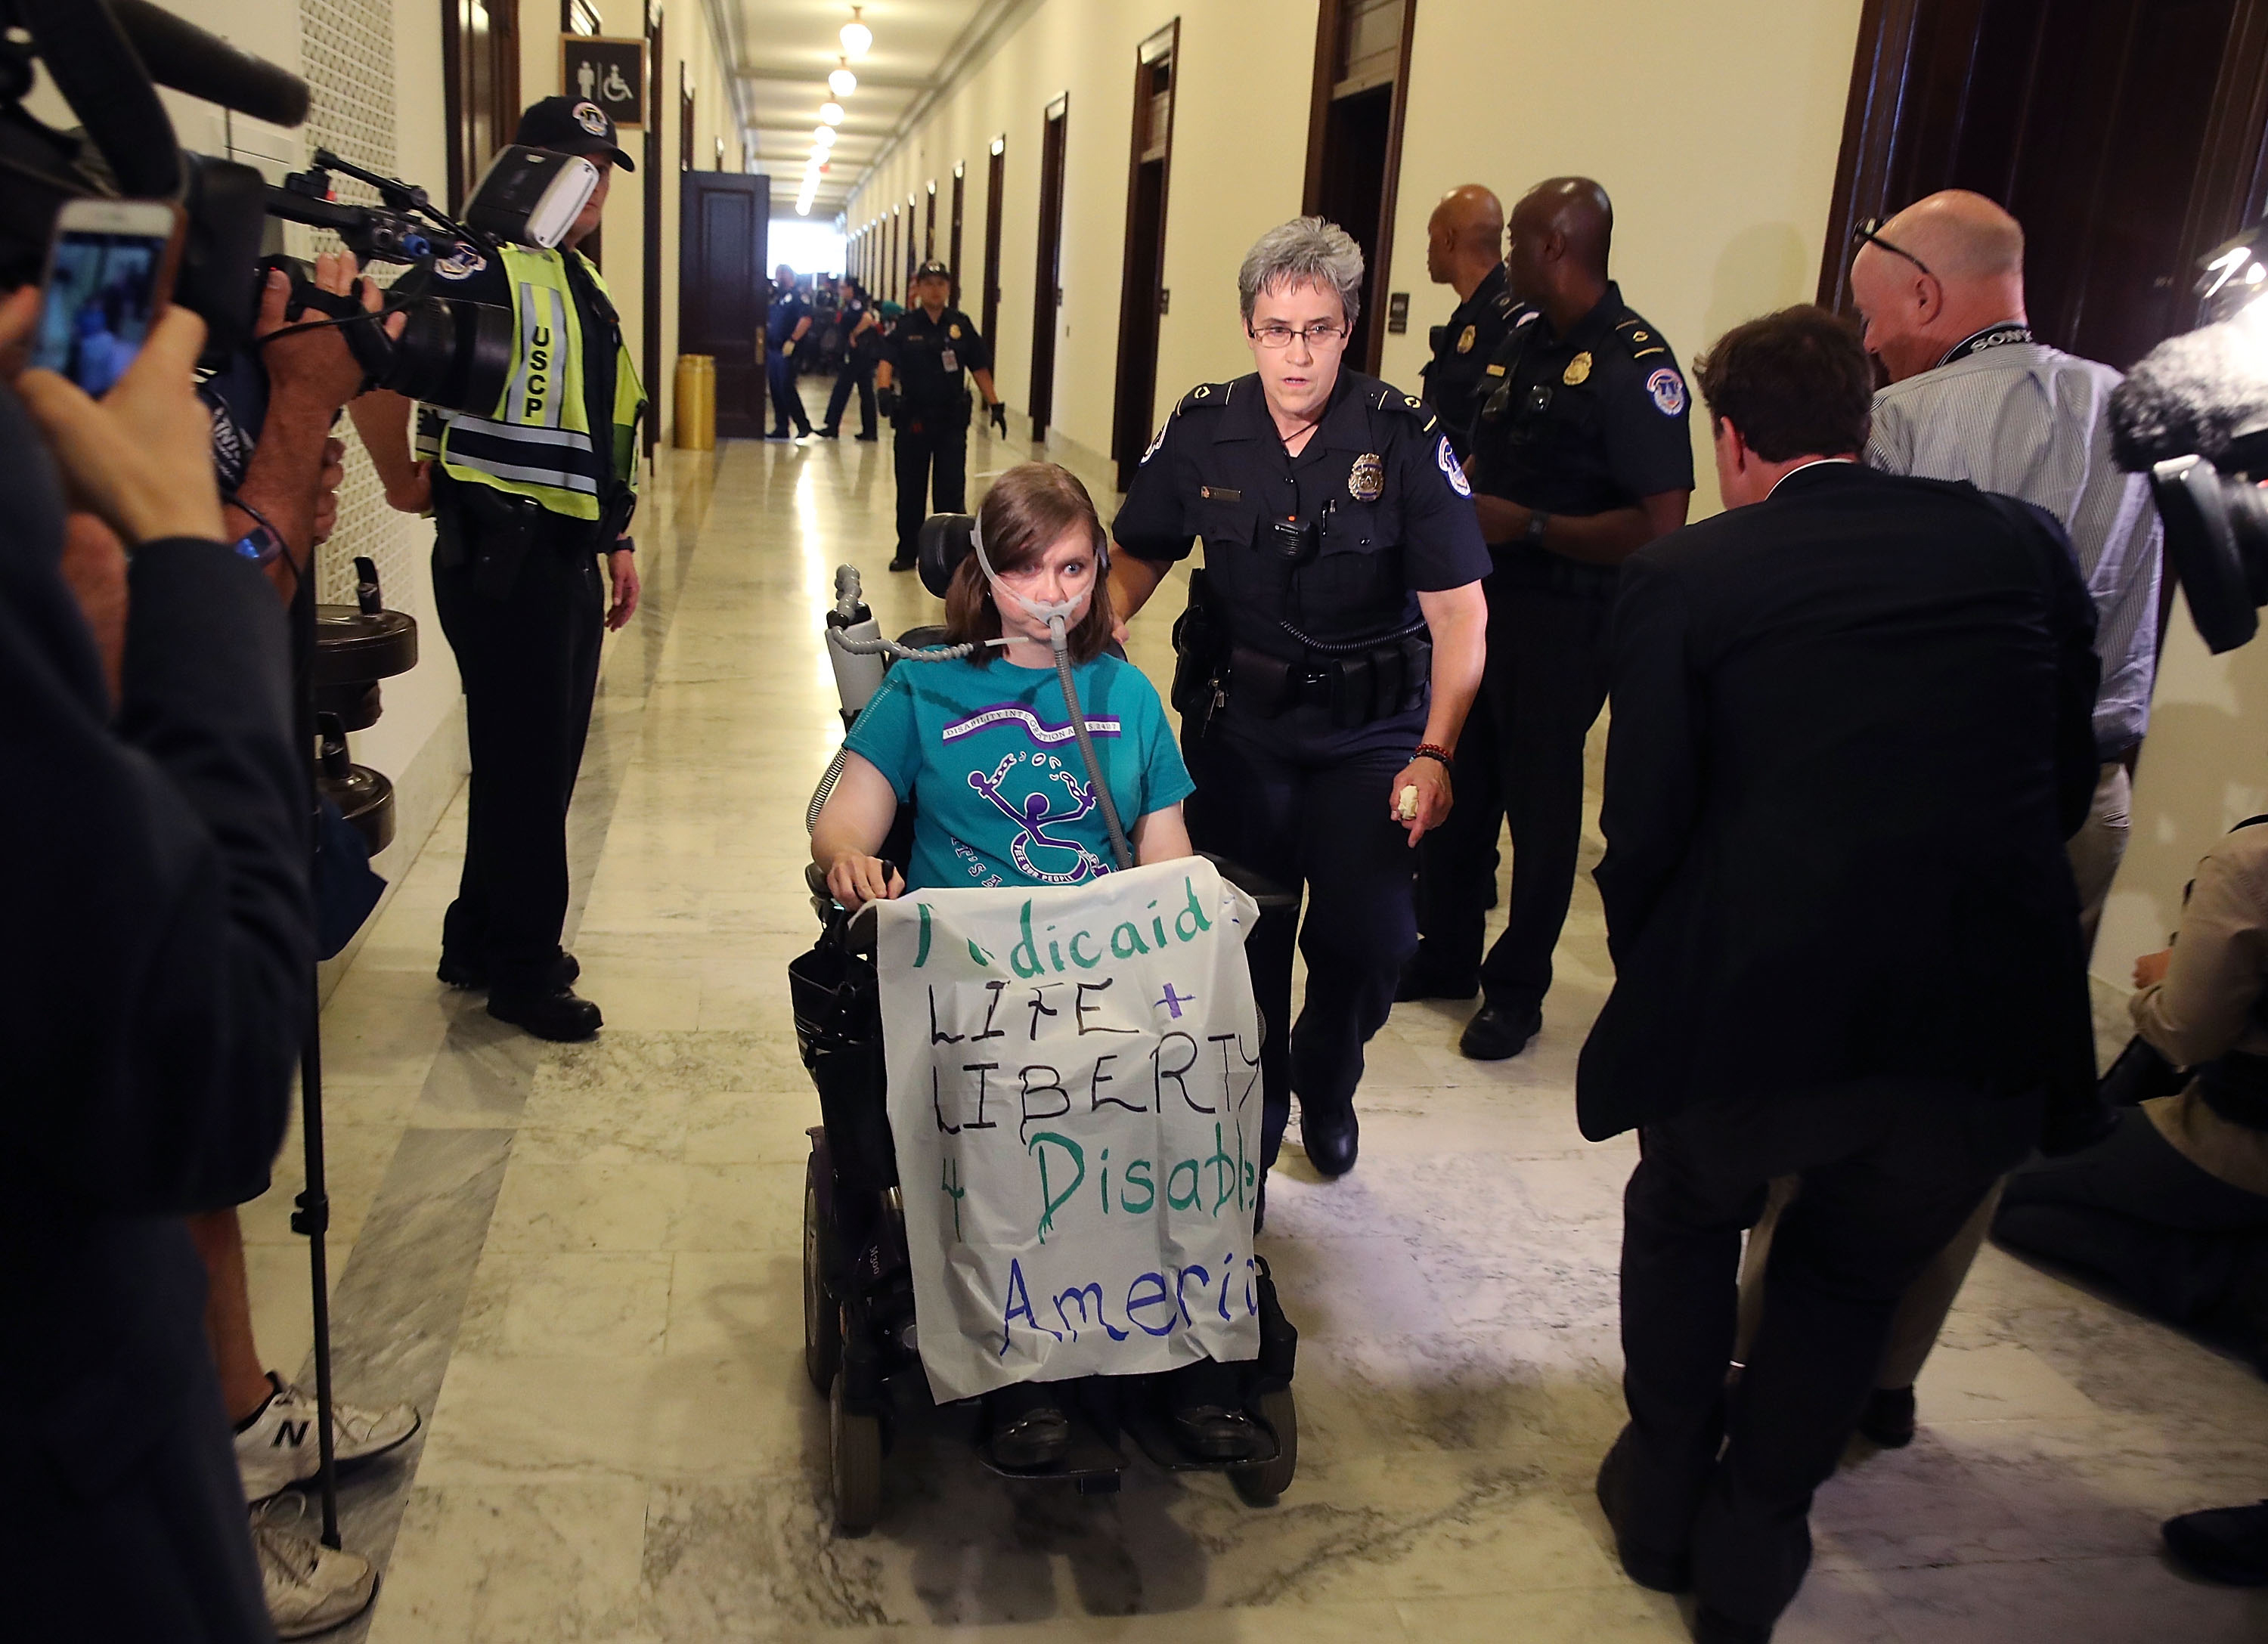 U.S. Capitol Police remove Laura Halvorson, a protester, from in front of the office of Senate Majority Leader Mitch McConnell (R-KY) inside the Russell Senate Office Building on Capitol Hill, on June 22, 2017 in Washington, DC.